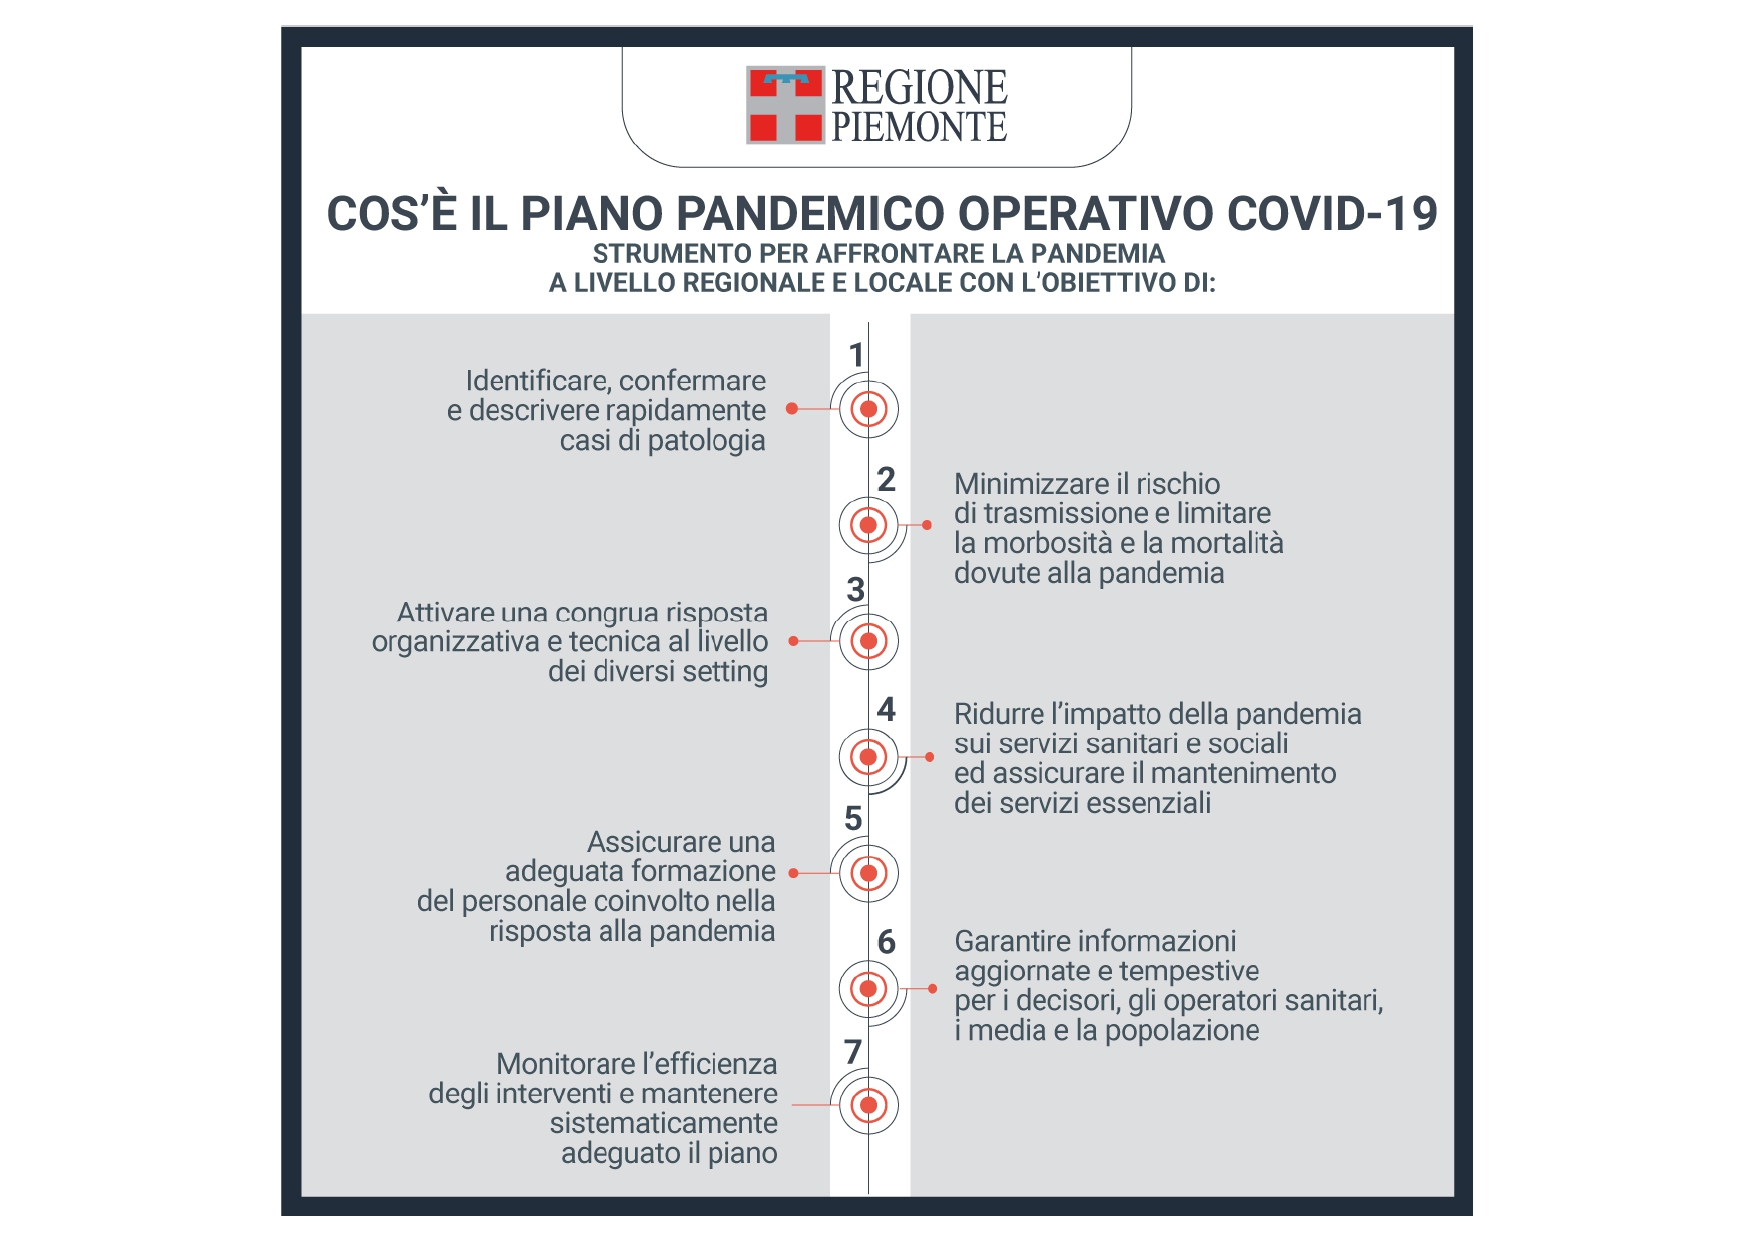 covidpiemonte_pianopandemico (1)_pages-to-jpg-0001